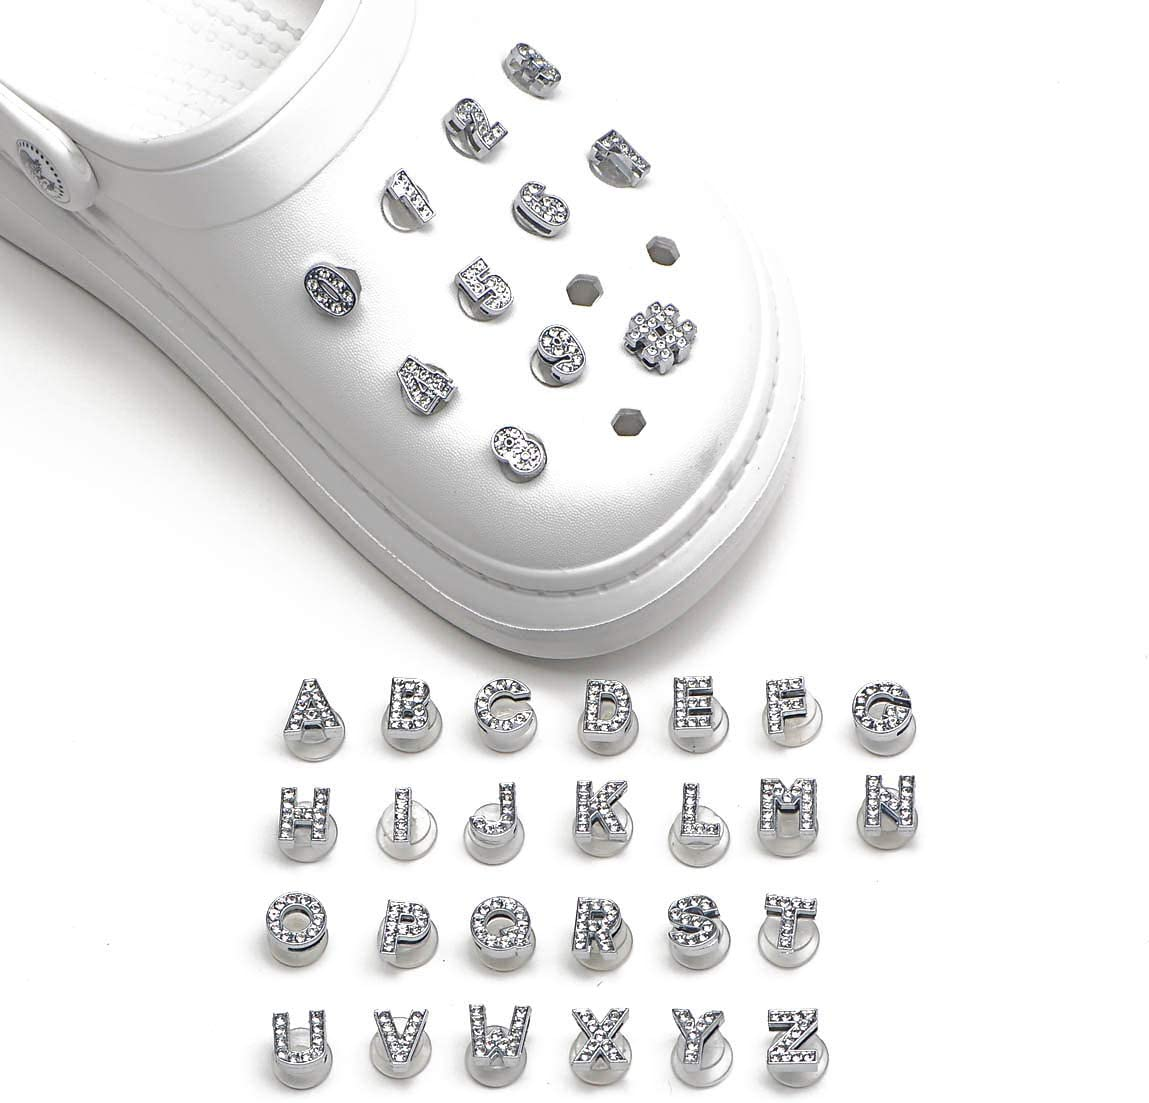 OROTER Shoe Charms Fits for Clog Sandals Decoration with Wristband Braceletfor Kids Boy Girls Men Women Party Favors Birthday Gifts Numbers Letters 37Pcs Silver with Crystal